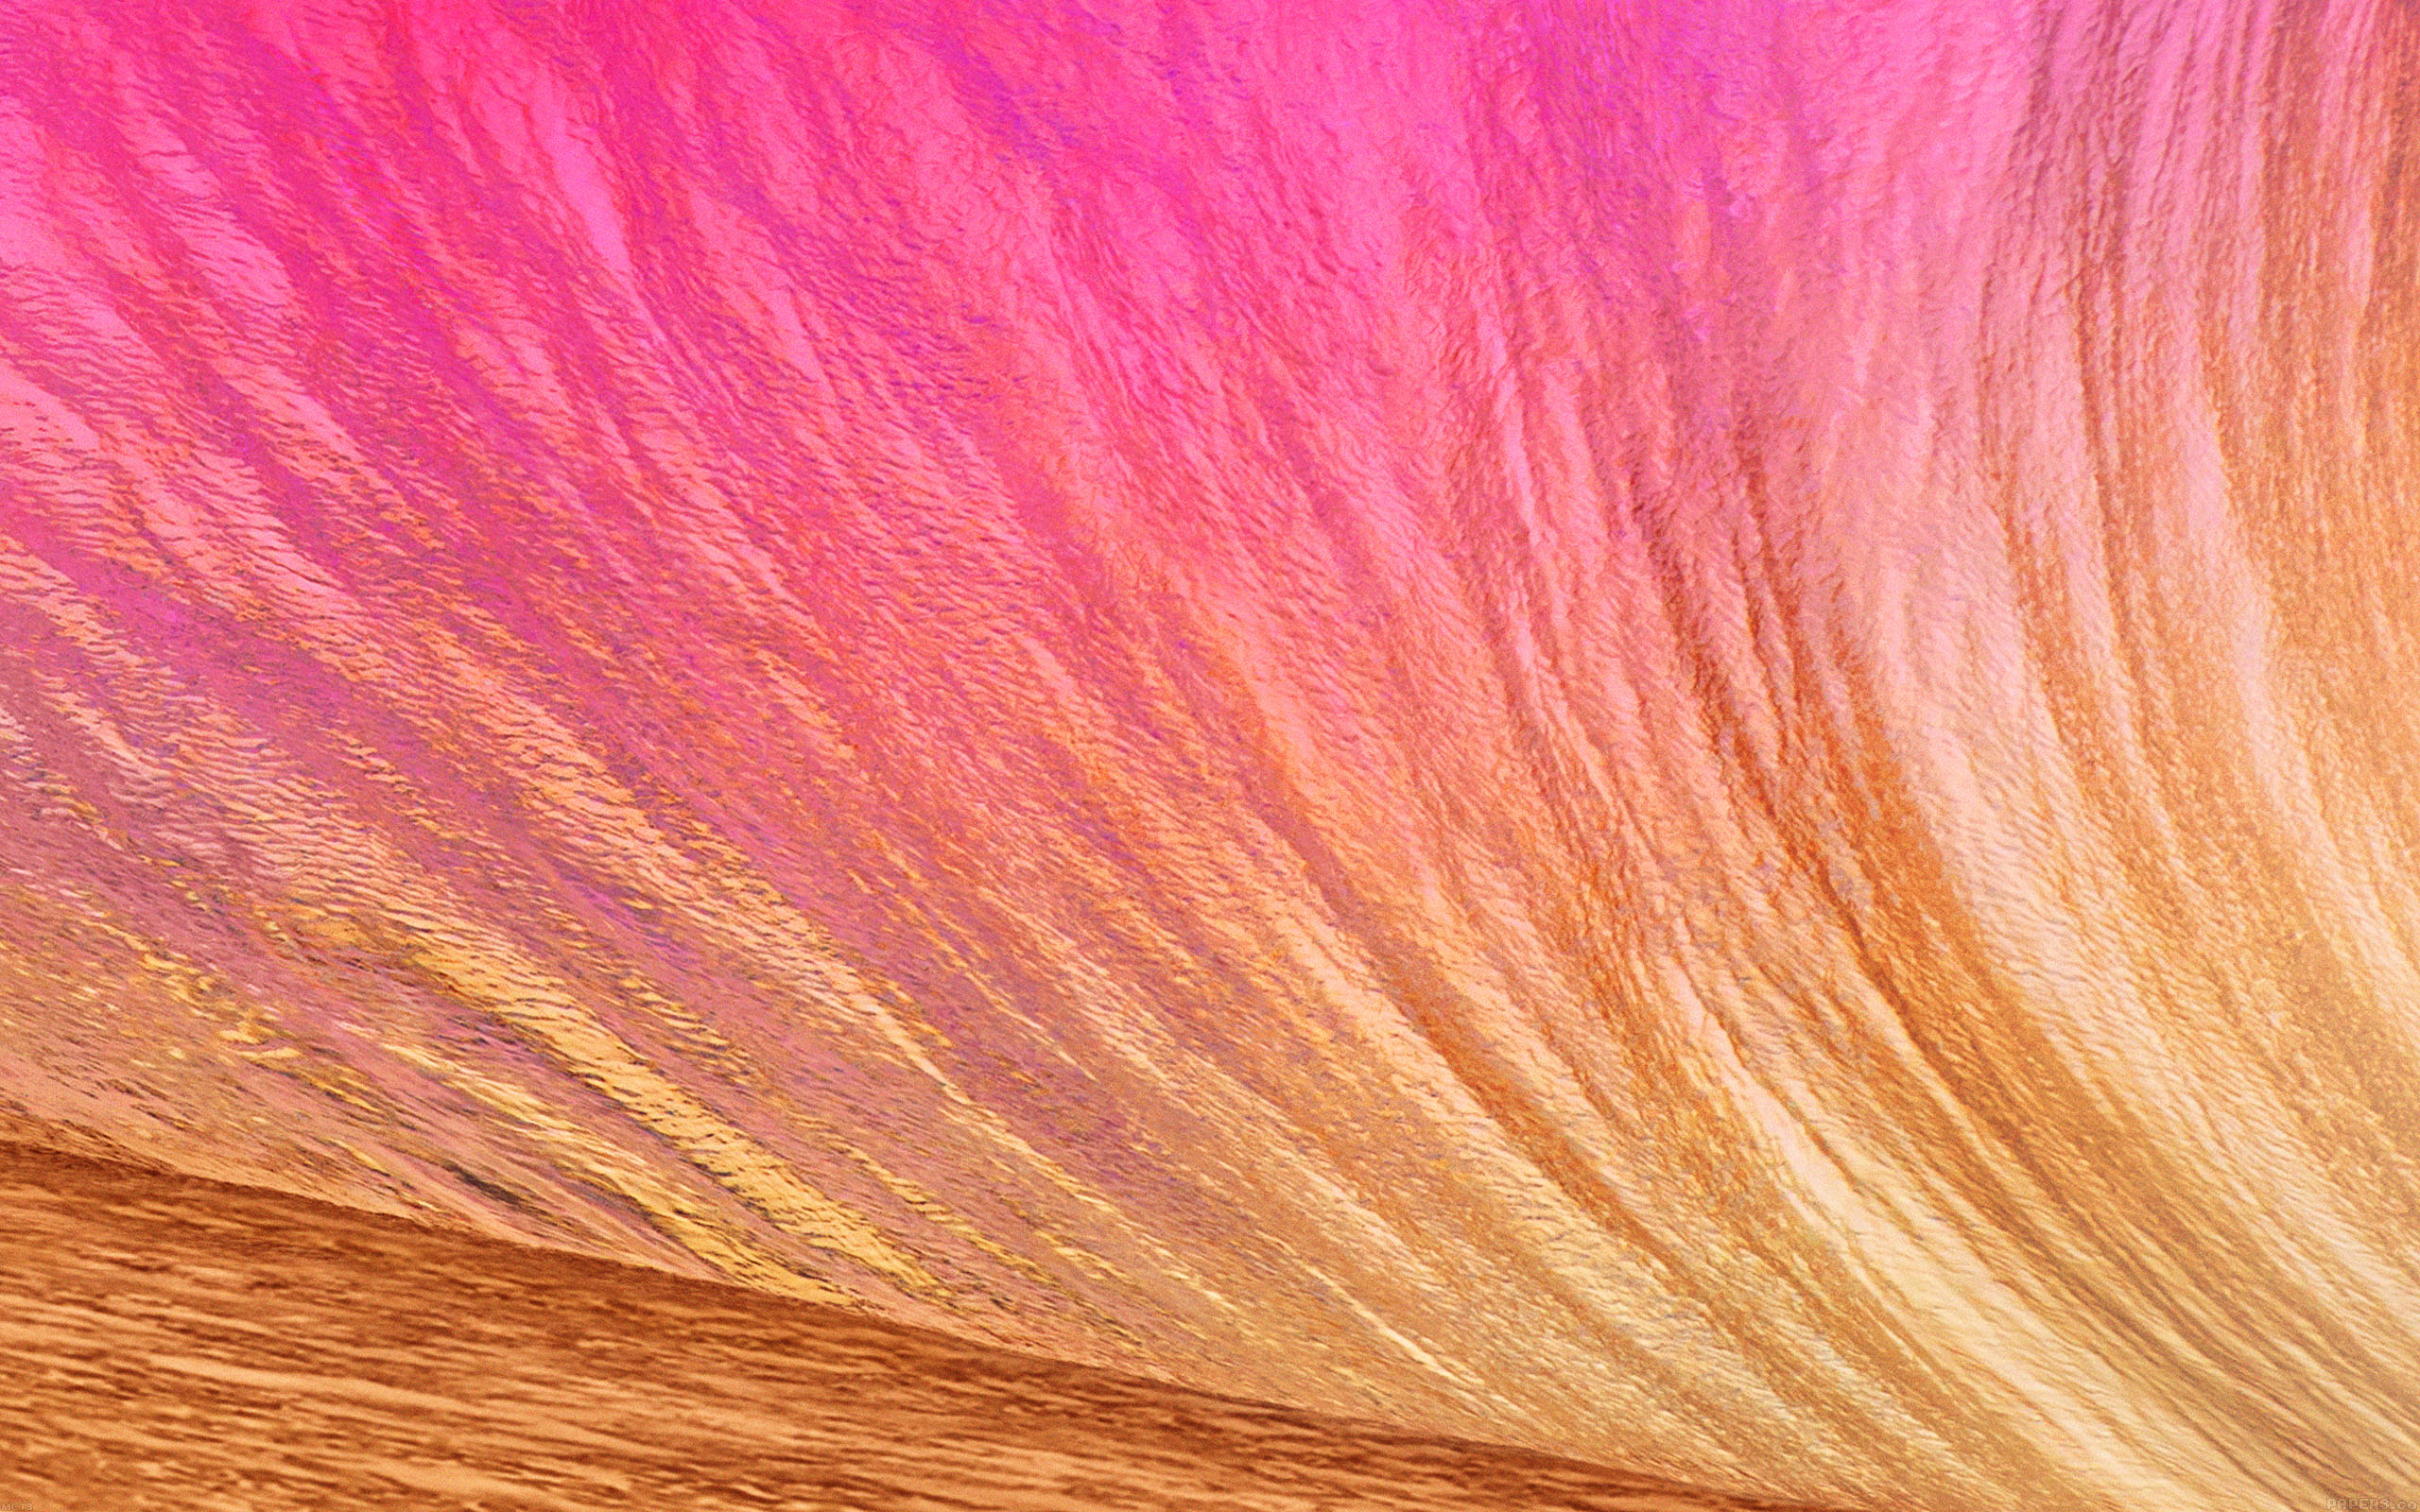 Pink Cute Wallpaper For Iphone Mc13 Wallpaper Gold Wave Apple Sea Papers Co